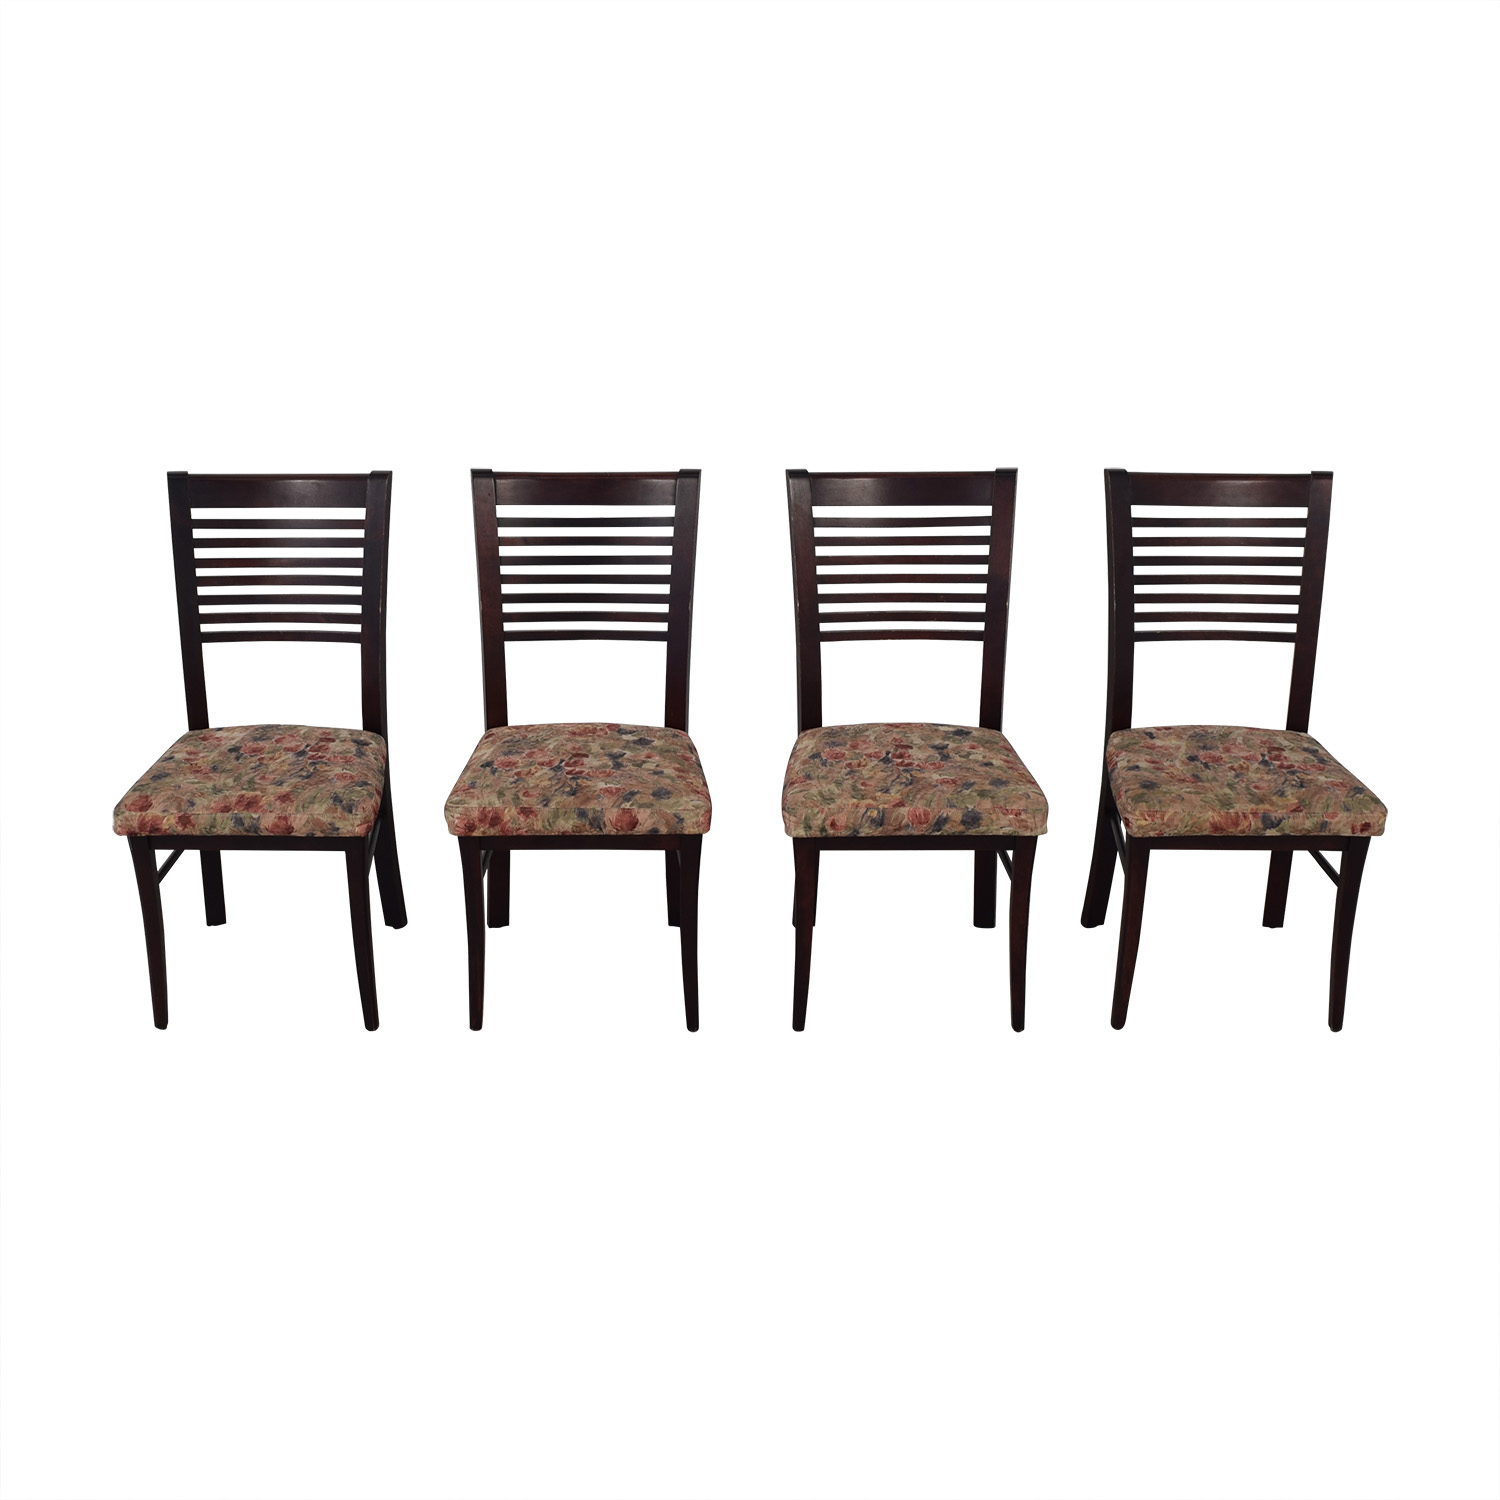 Canadel Canadel Floral Upholstered Dining Chairs used